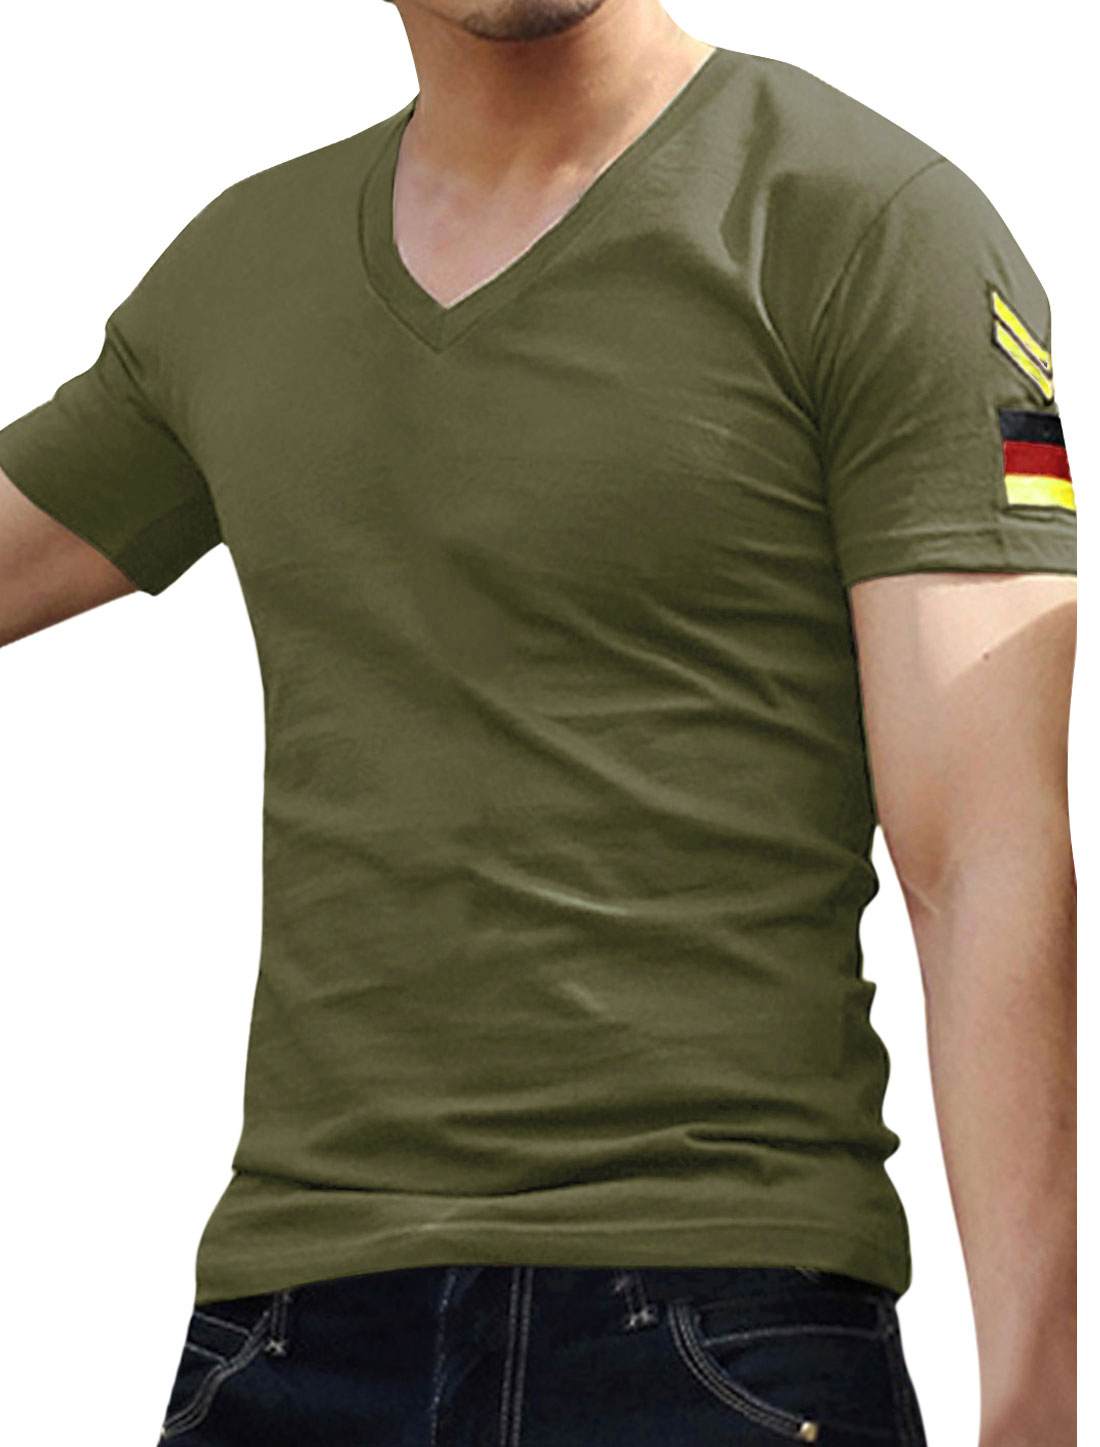 Men Short Sleeve Badge Embroidery Trendy Soft Top Shirt Olive Green S